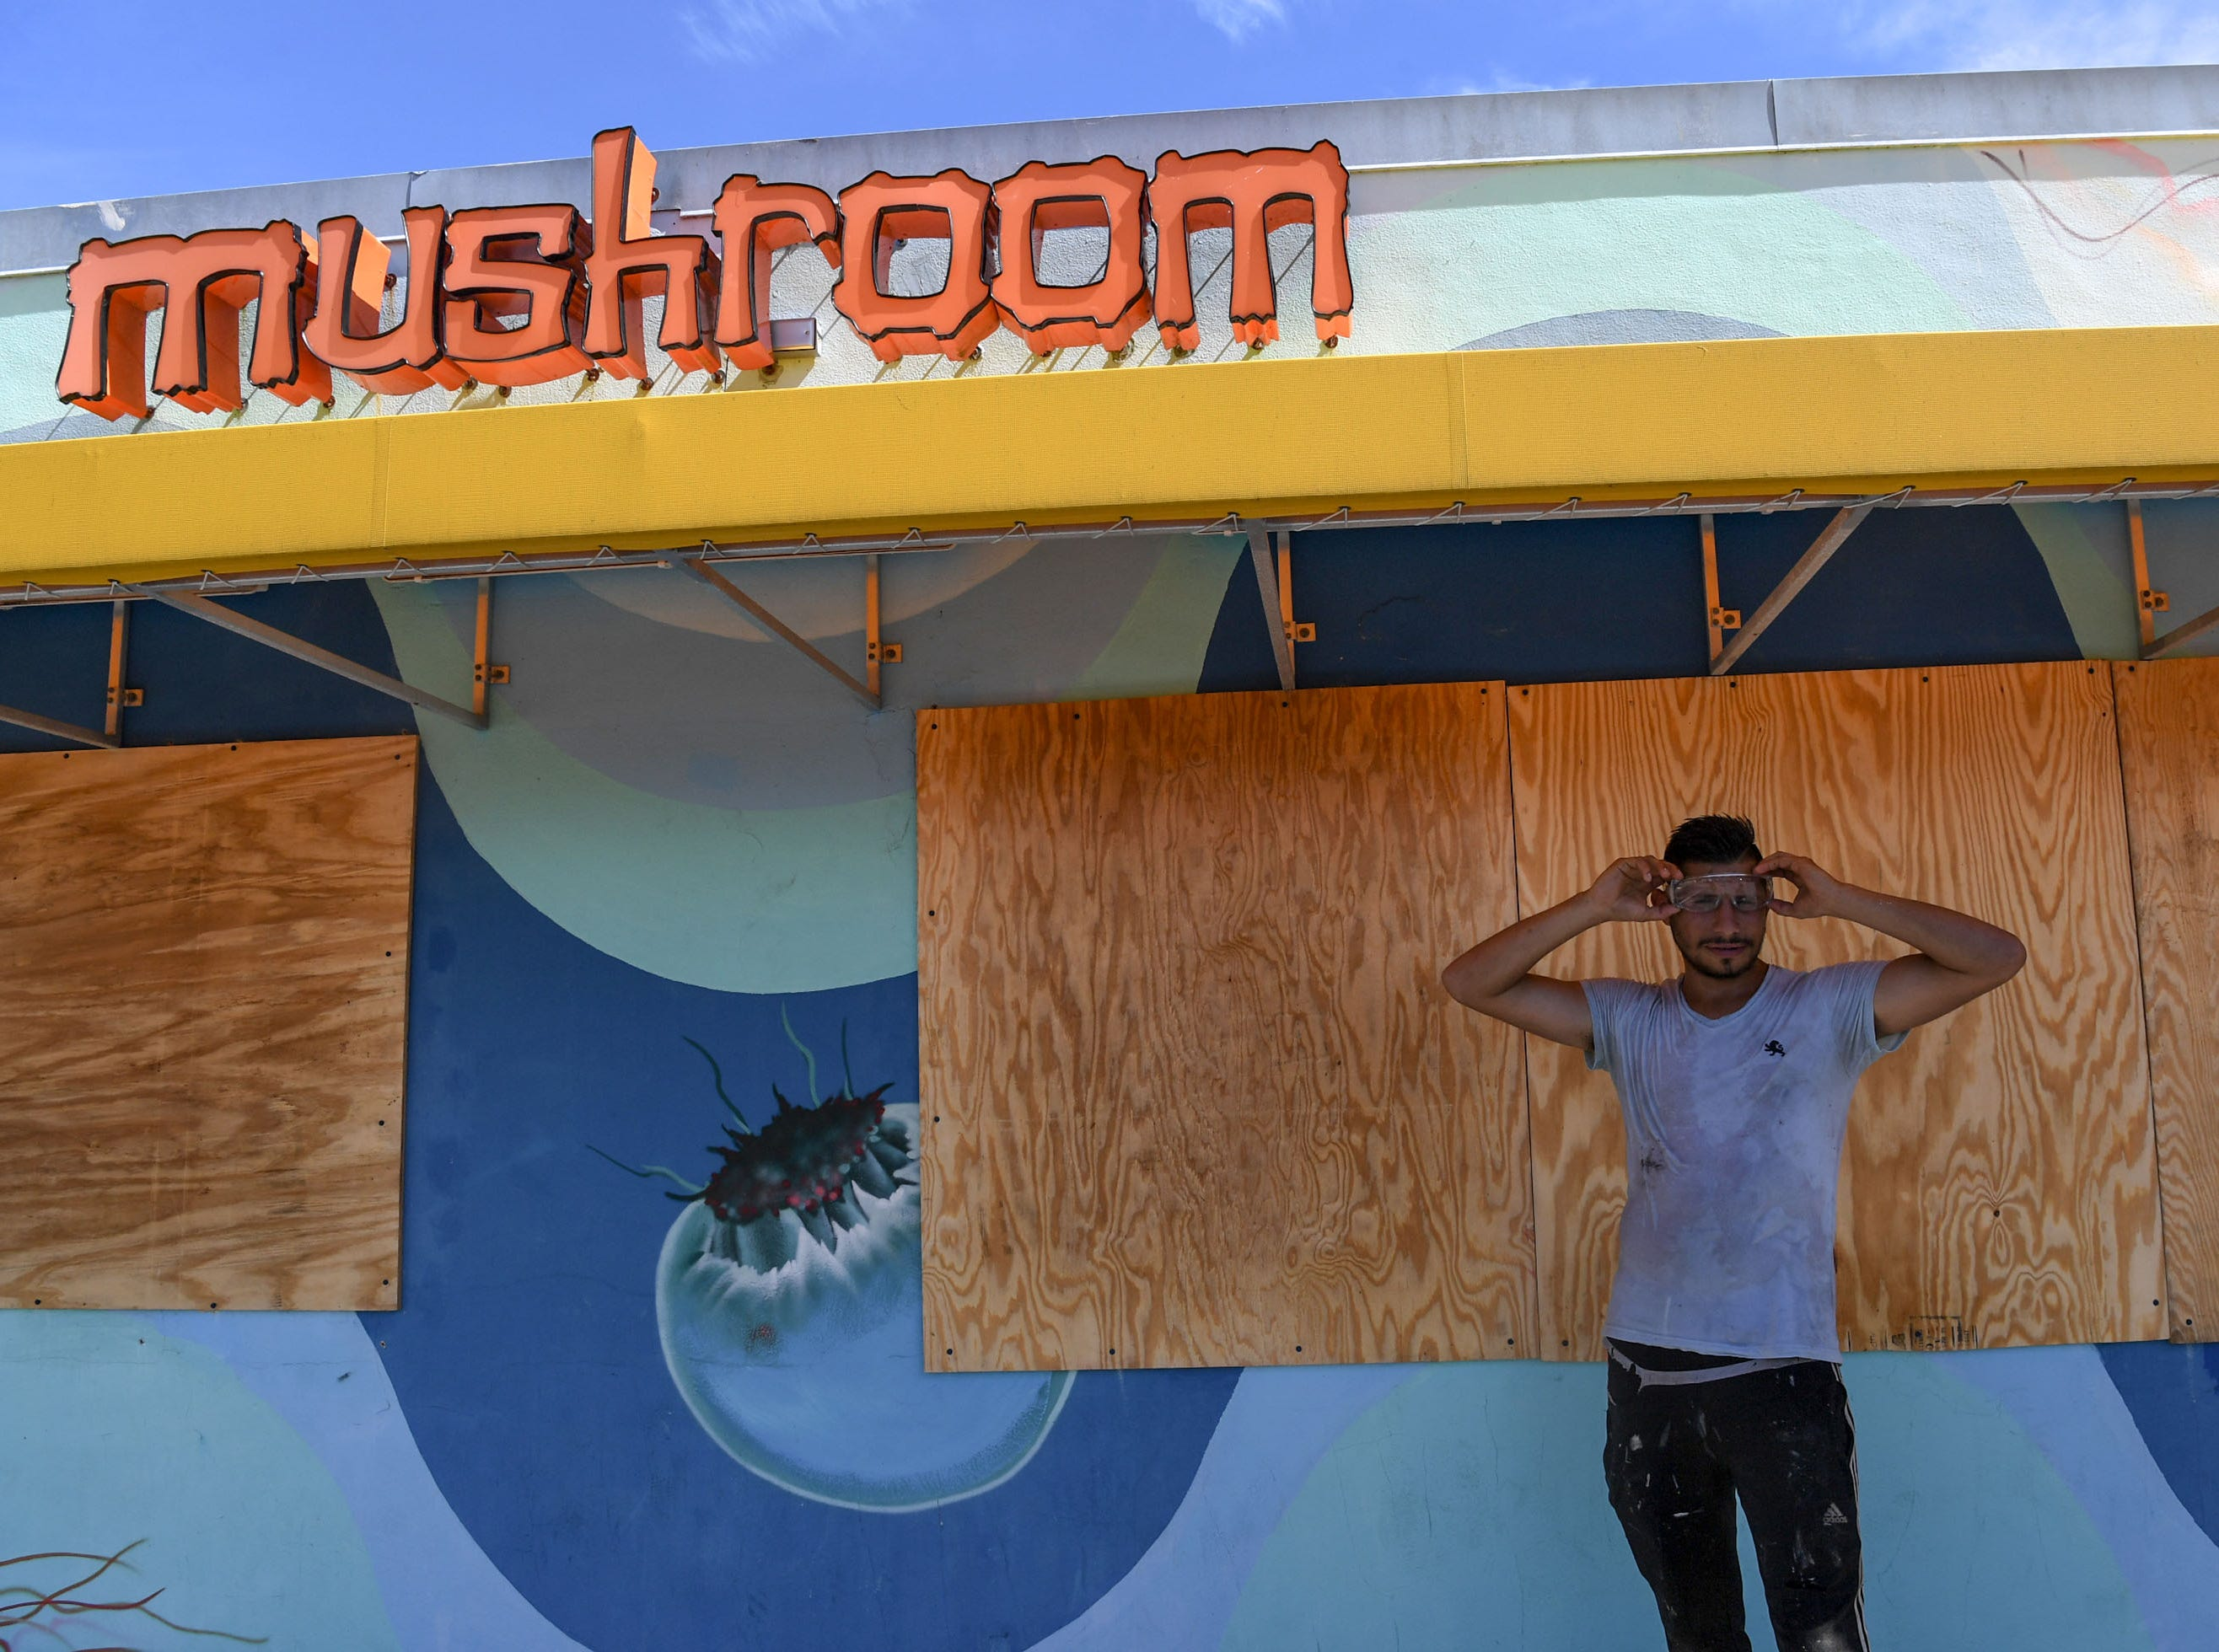 Ricardo Olivares, of Wilmington, North Carolina, covers windows at the Mellow Mushroom in Wilmington, North Carolina on Tuesday, September 11, 2018. Olivares said he is evacuating before Hurricane Florence arrives in Wilmington, North Carolina late Thursday night through Friday morning. (Ken Ruinard / Greenville News / Gannett USA Today Network / 2018 )